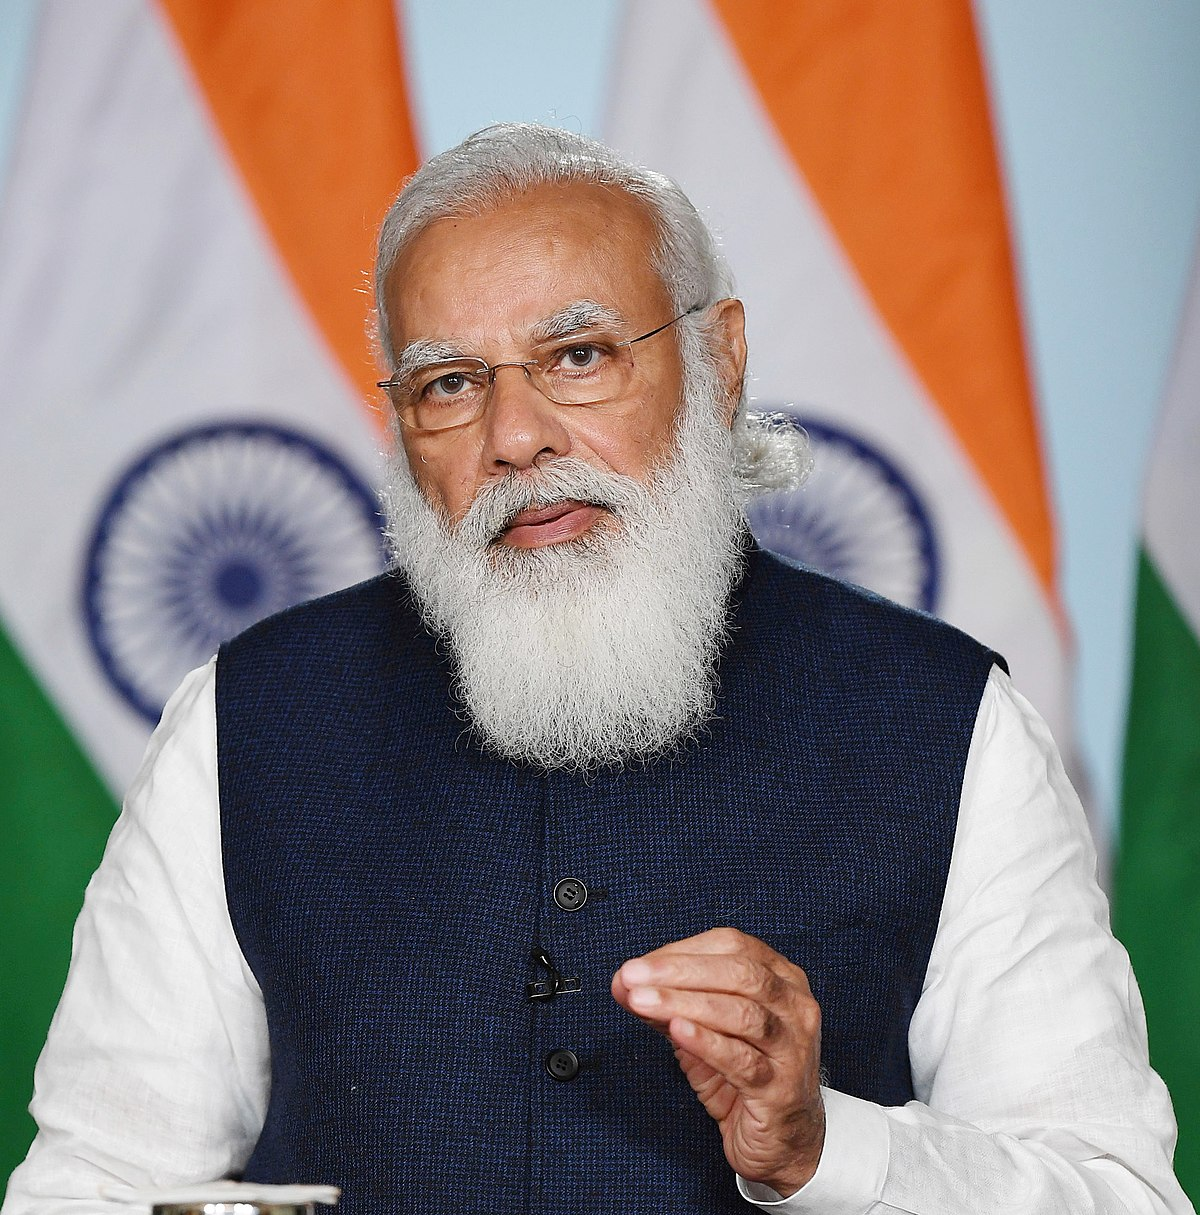 चित्र:The Prime Minister, Shri Narendra Modi addressing at the webinar for effective implementation of Union Budget in Defence Sector.jpg - विकिपीडिया